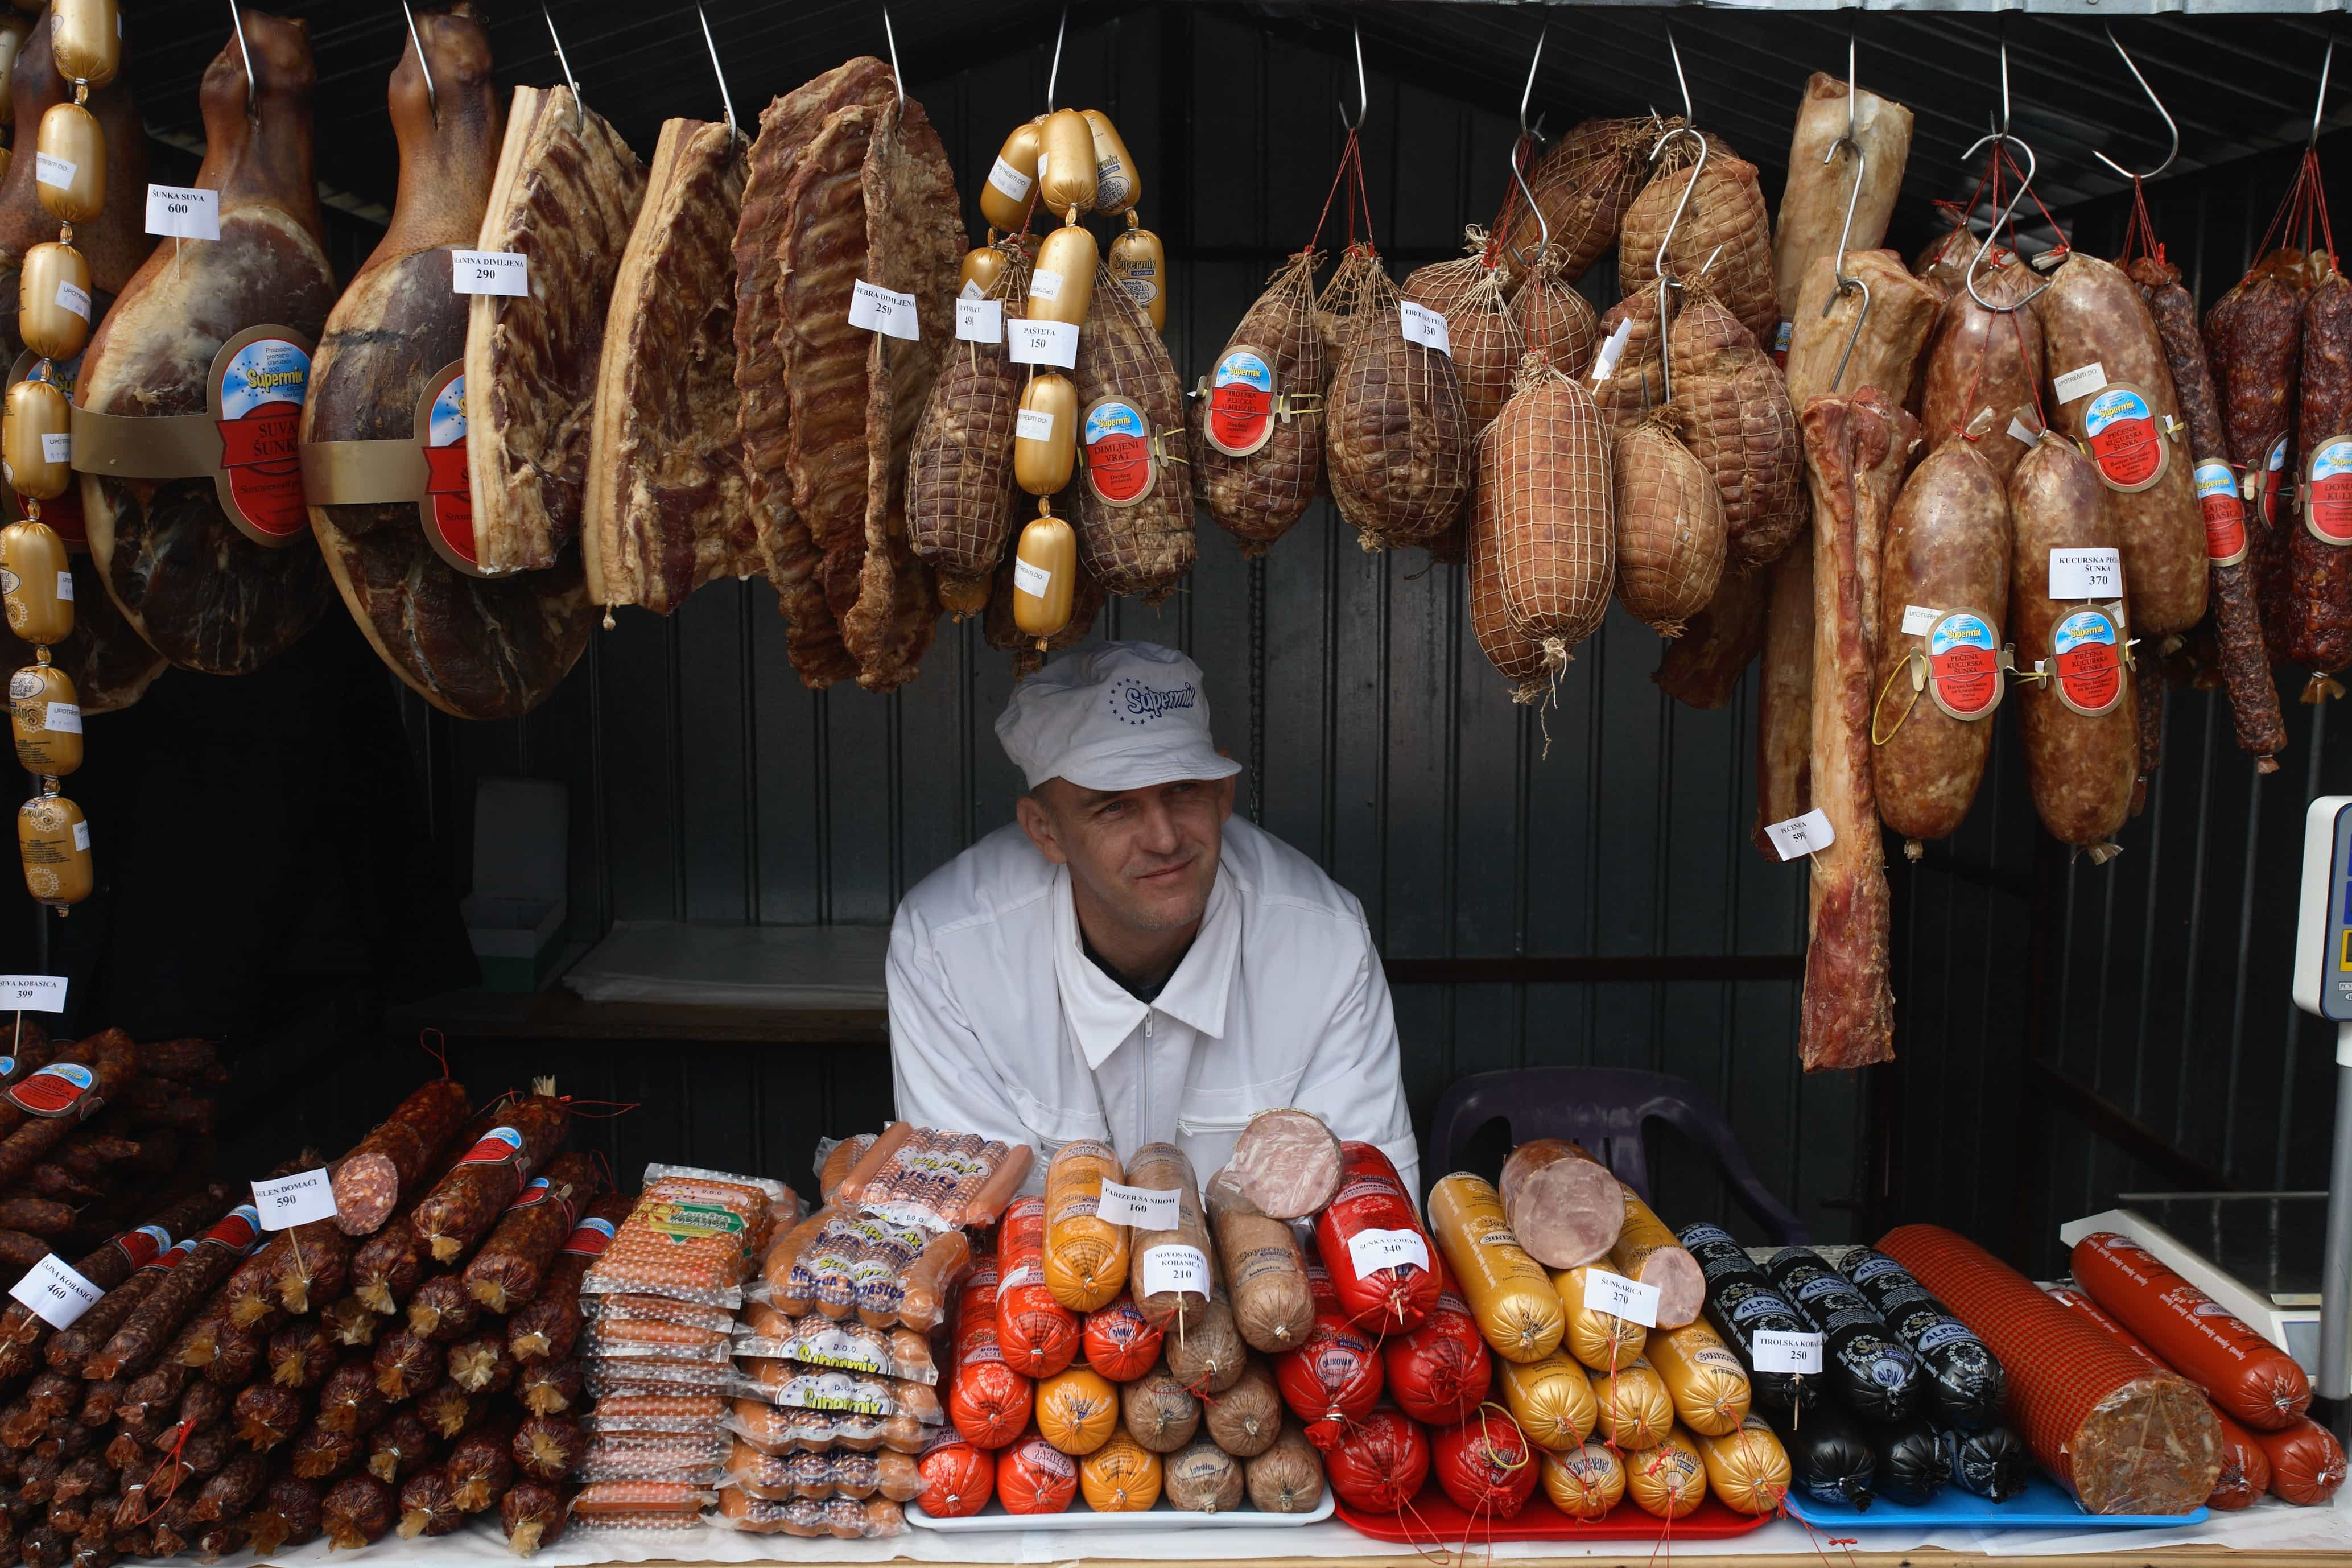 Vendor selling sausages in Turija in Belgrade, Serbia